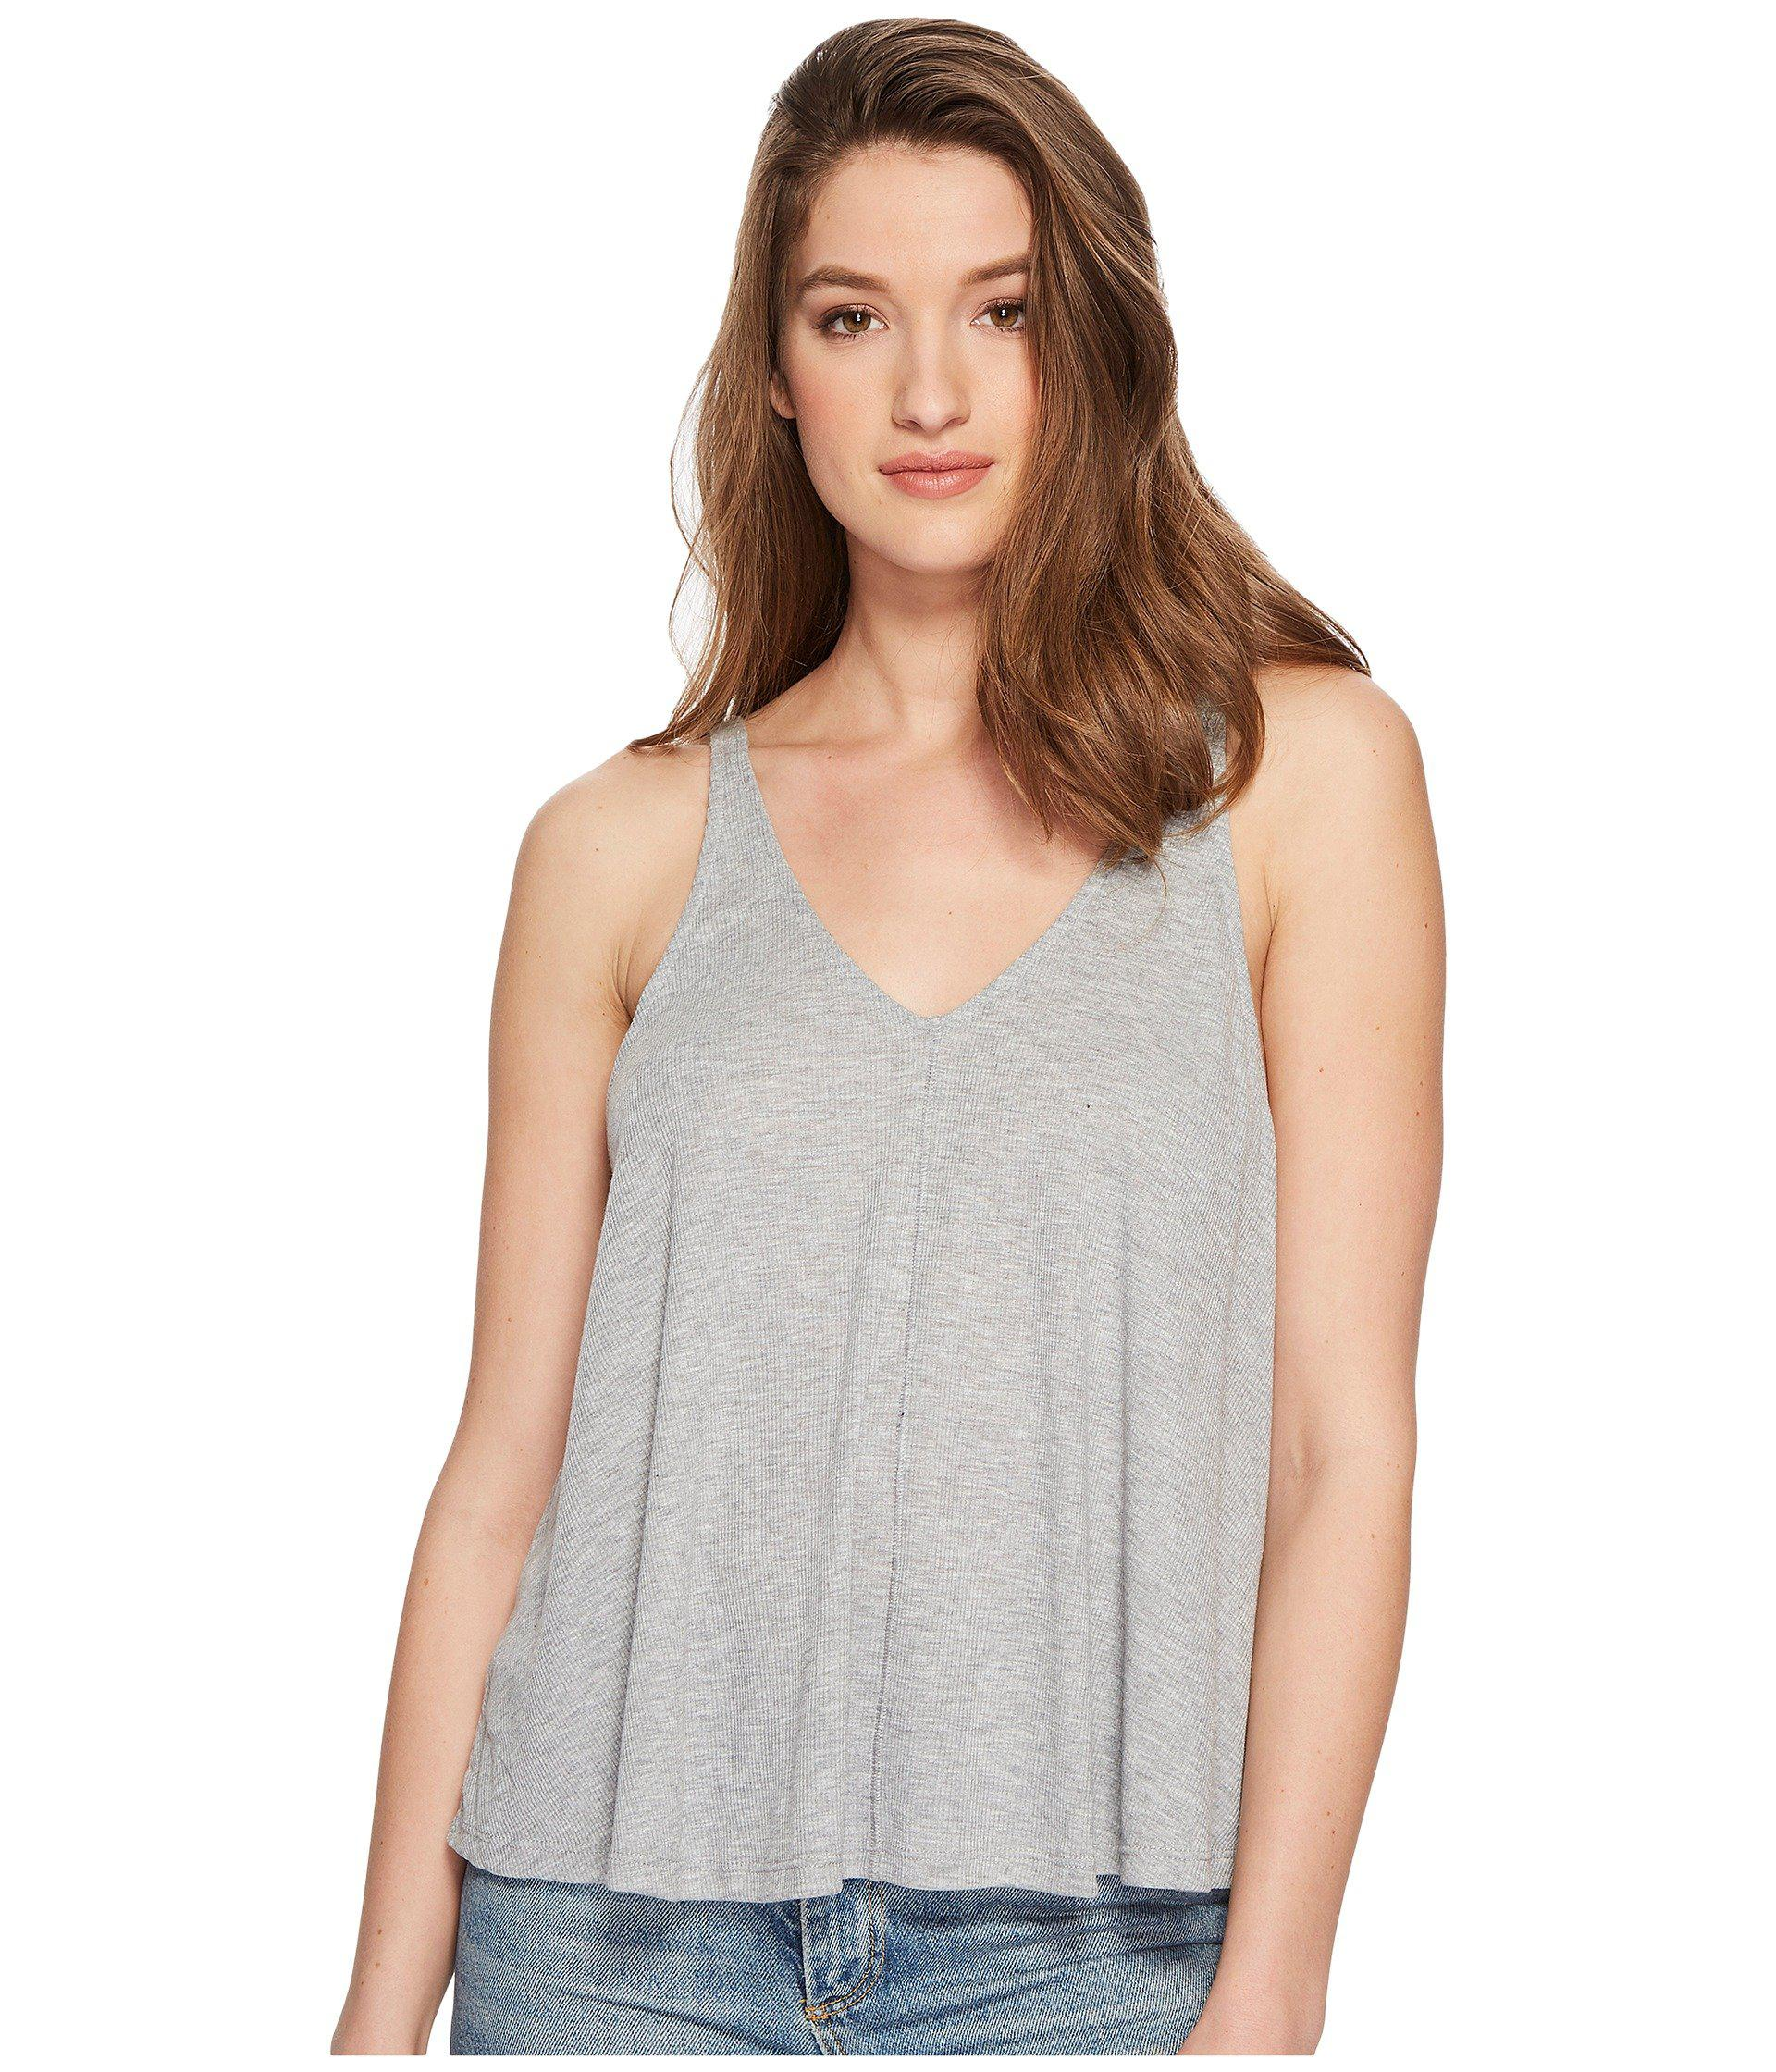 8f402ddca5c91 Lyst - Free People Dani Tank Top (grey) Women s Sleeveless in Gray